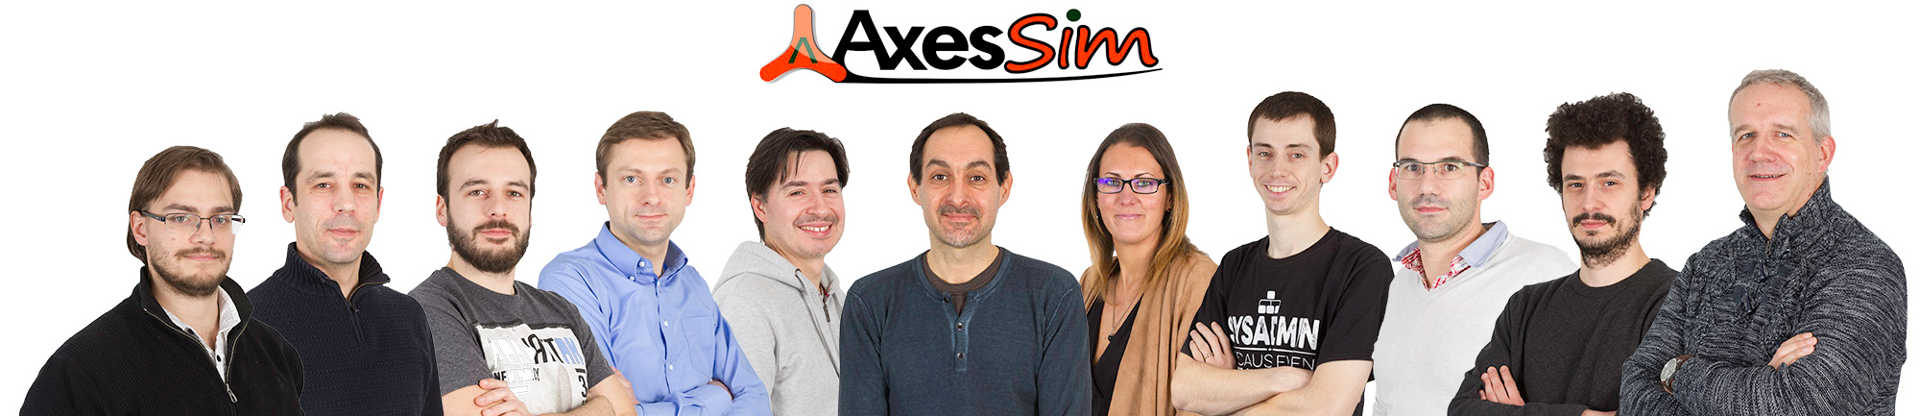 AxesSim : Innovative team in Electromagnetic simulation